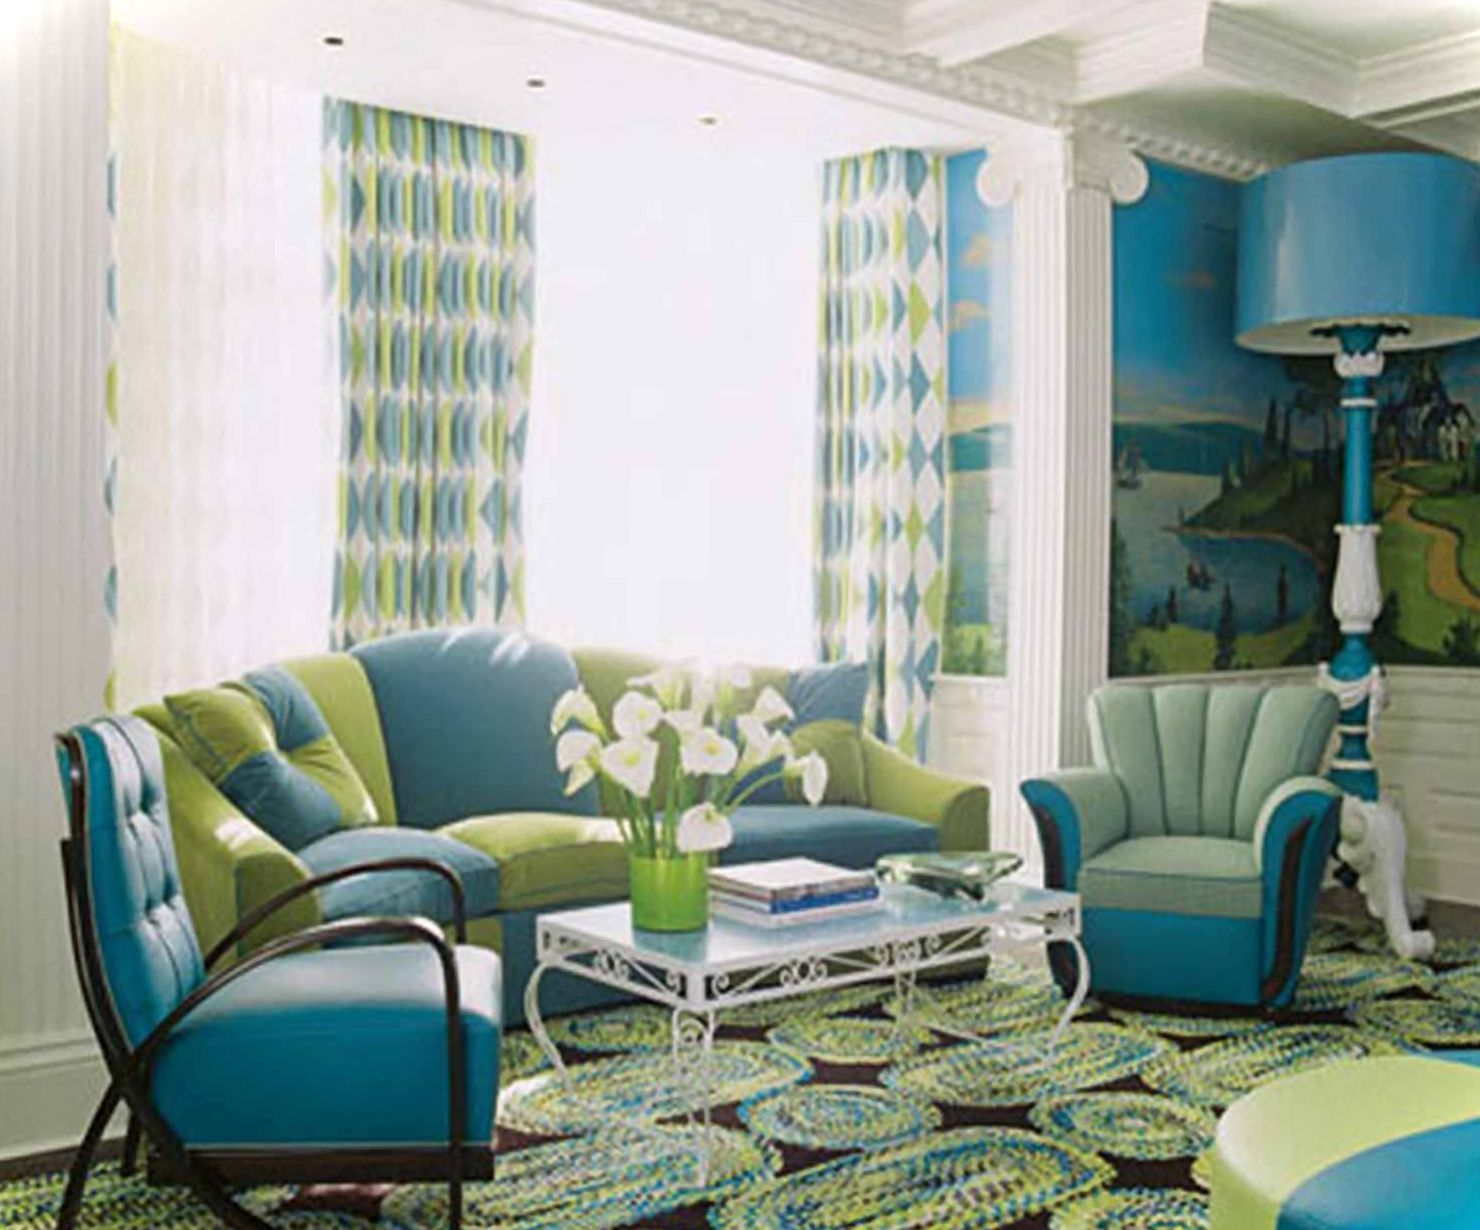 Brown Blue And Green Living Room Ideas Green Living Room Decor Blue And Green Living Room Living Room Turquoise